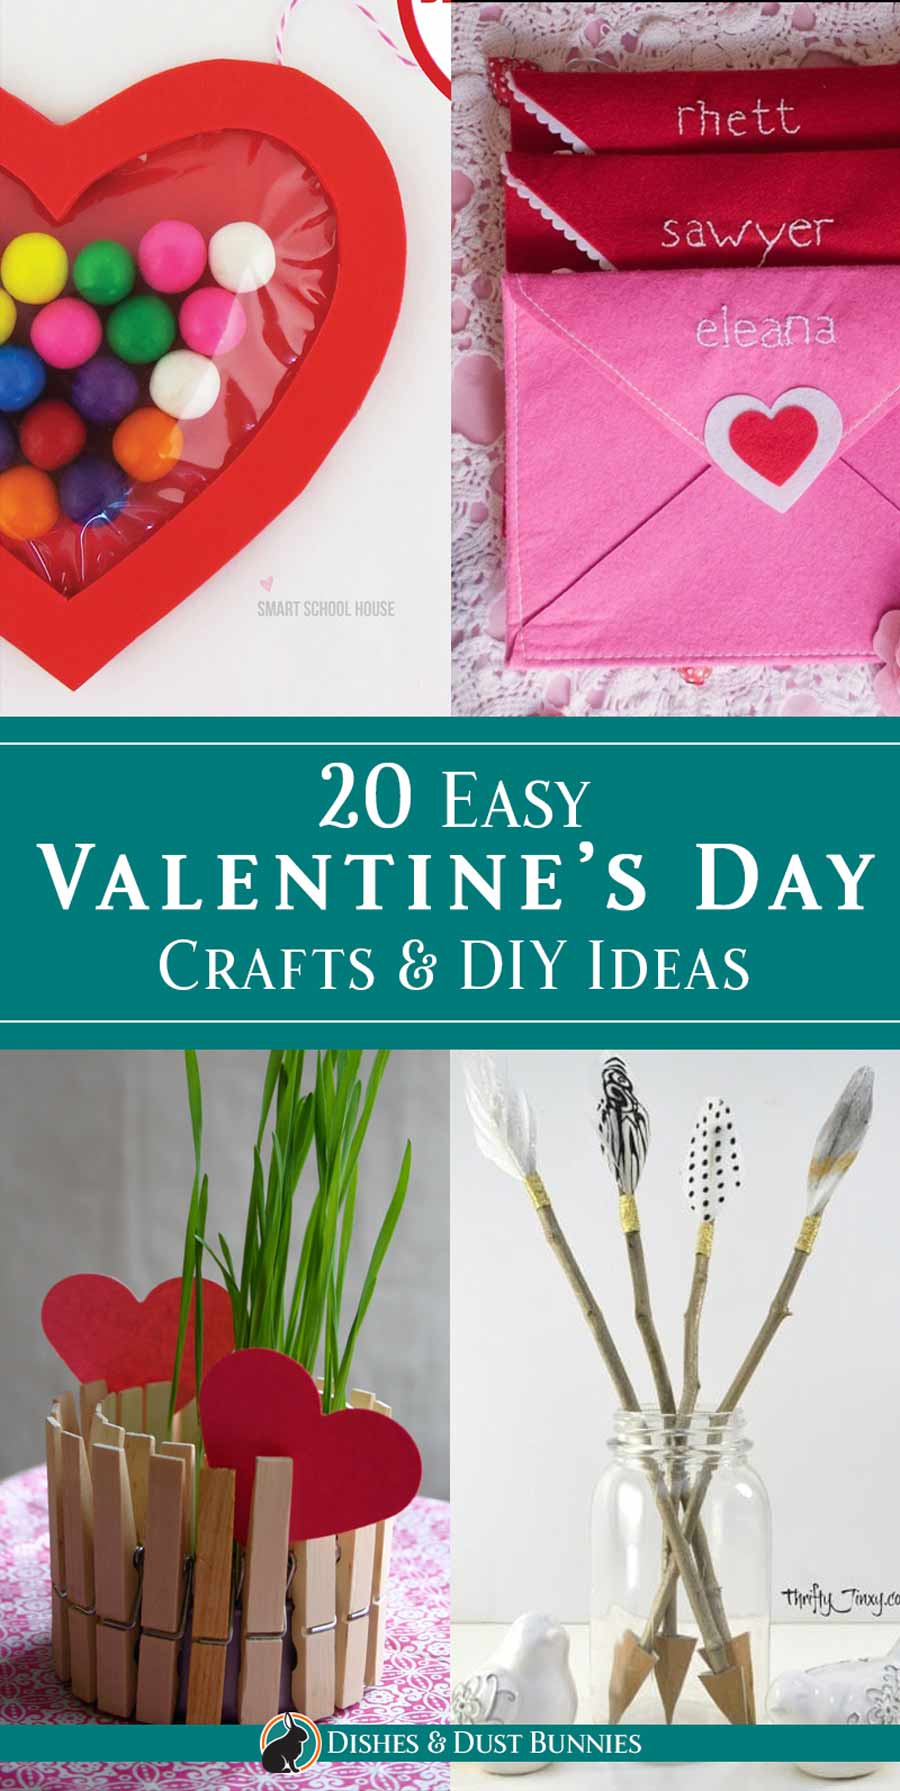 04374a08078 20 Easy Valentine's Day Crafts & DIY Ideas - Dishes & Dust Bunnies